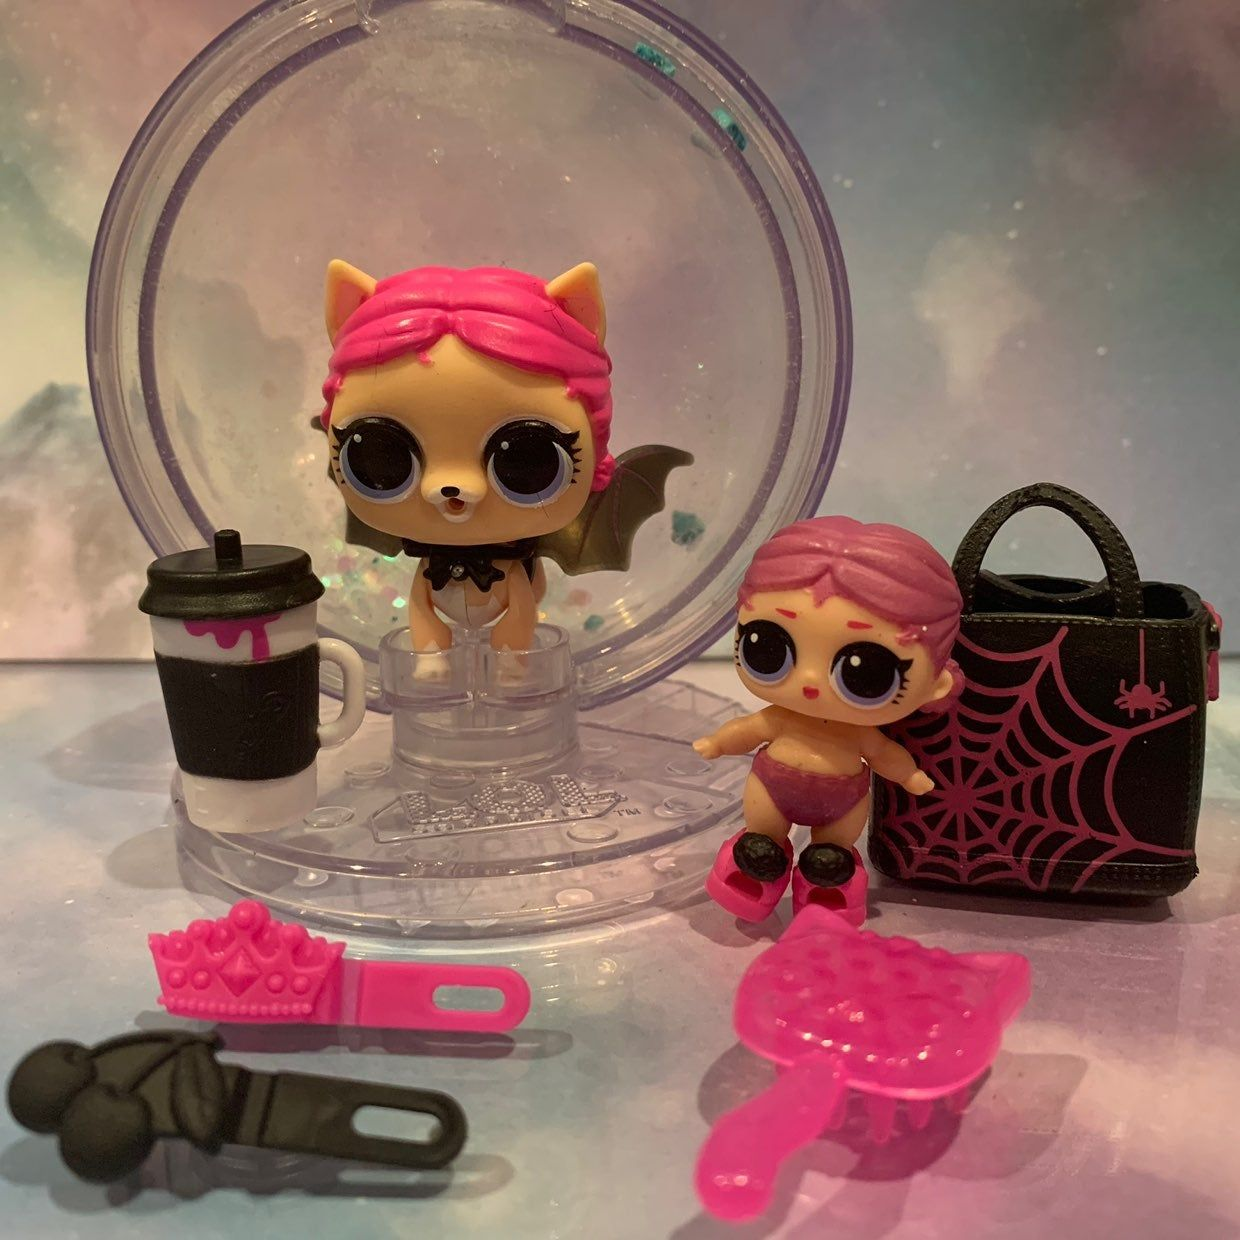 Lol Surprise Spooky Club Doll Lot Includes Vampupper Wd 025 Winter Disco Fluffy Pets Series Lil Countess 069 Eye Spy Series Vampupper Lol Dolls Dolls Lol